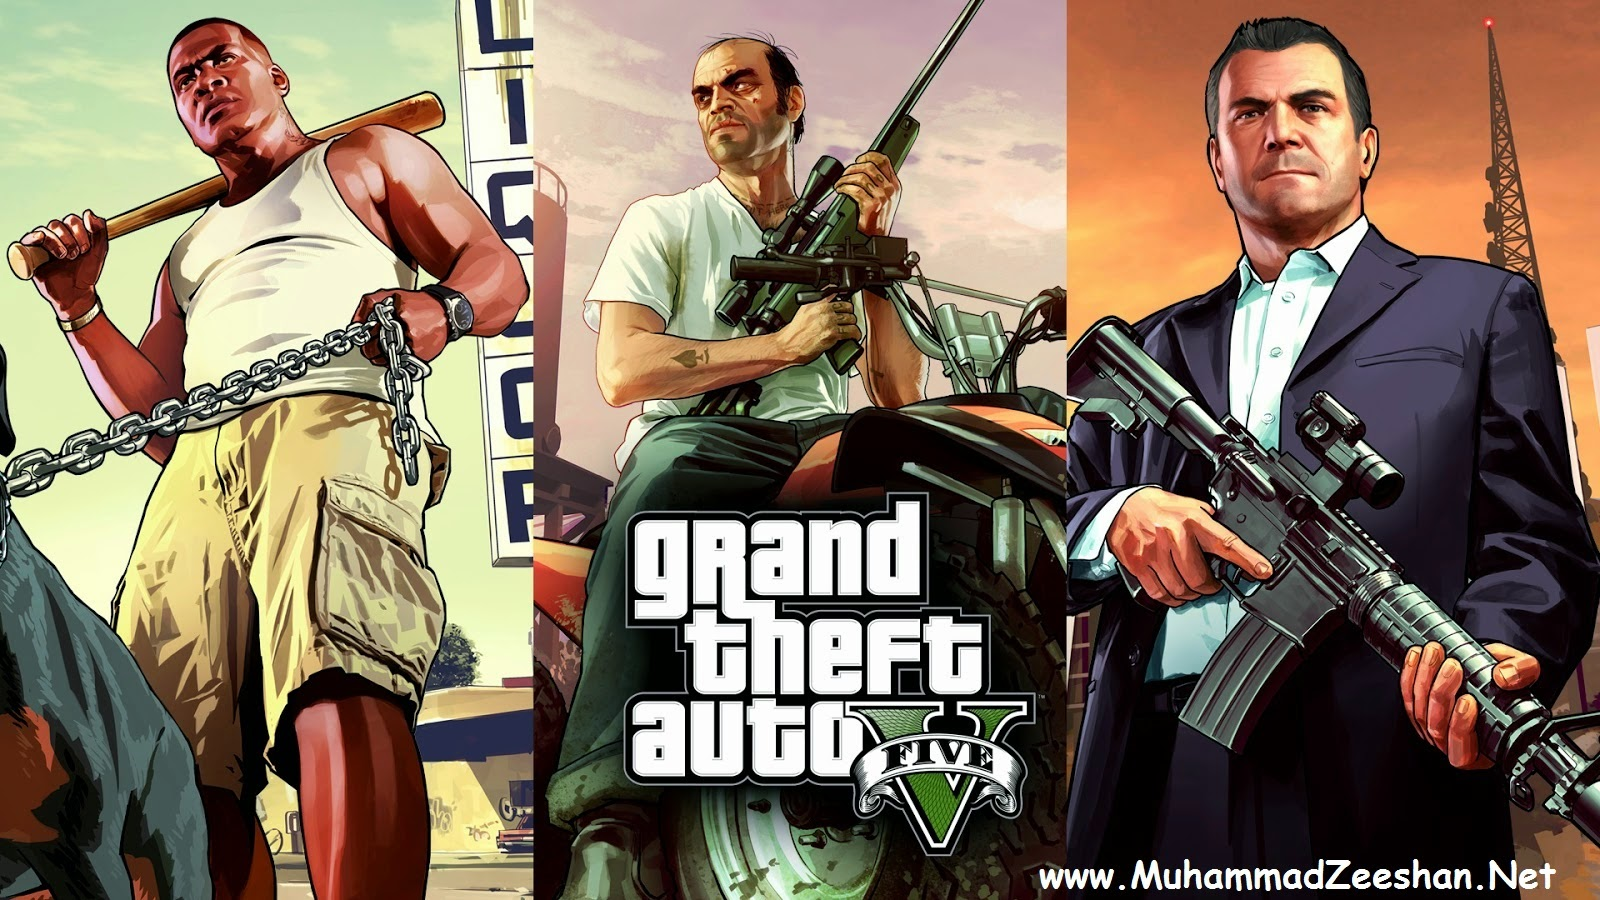 Grand Theft Auto V (GTA 5) PC Game Full Version Free Download Cover Image